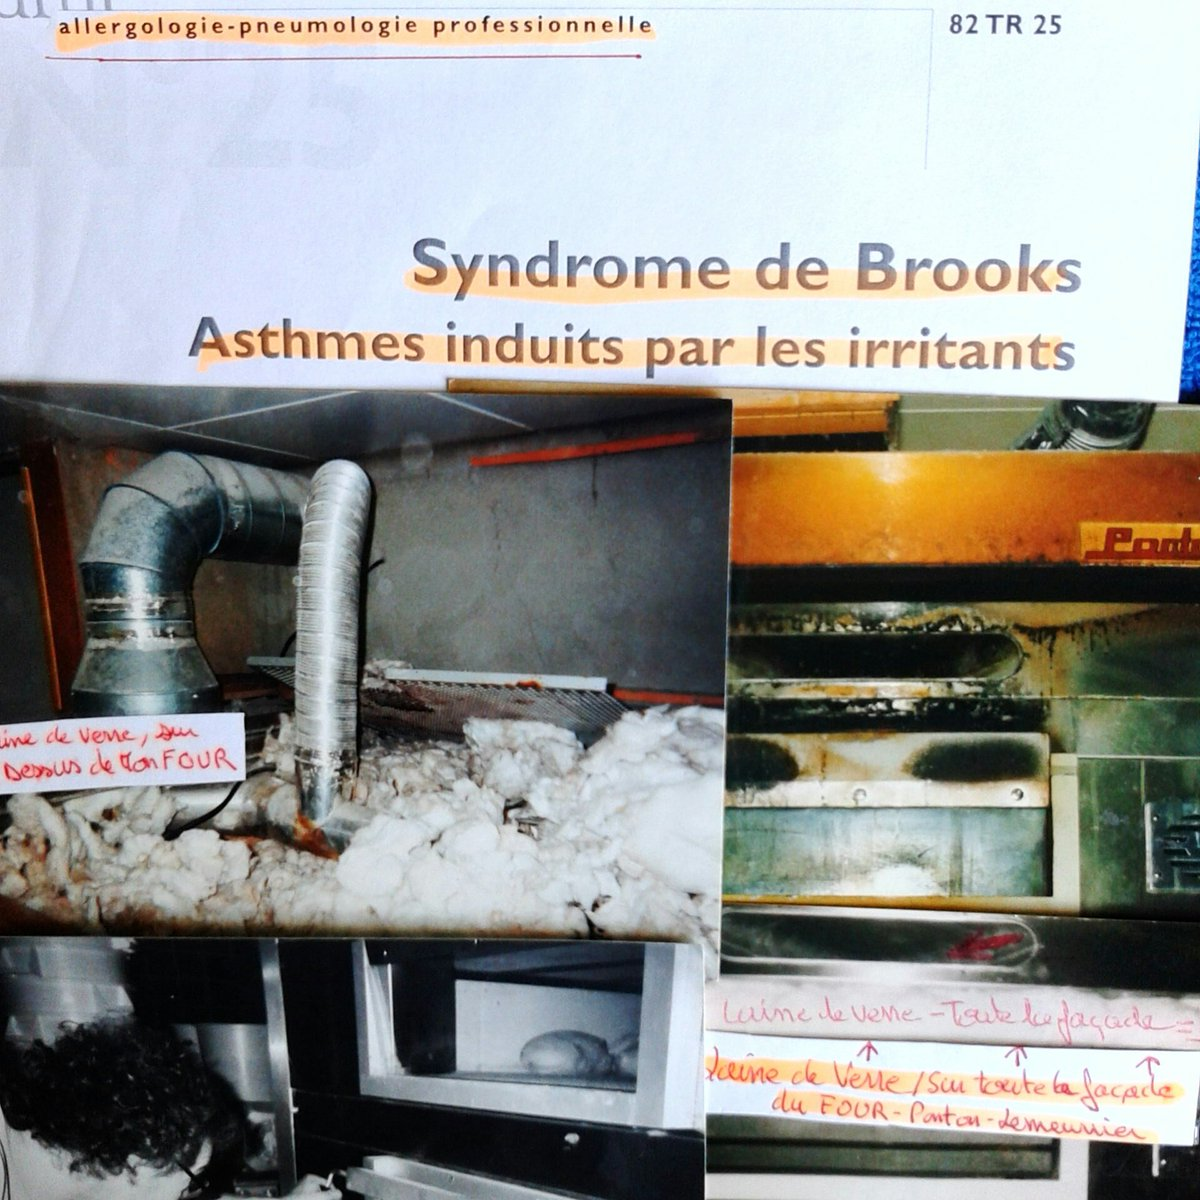 @wtimage #CLIMATE POLLUTION OVENS BOILERS RISK CHEMICAL INSULATION/INTERNET&gt;robert reeb,fours,pollution,isolation,danger,santé,reebro@sfr.fr <br>http://pic.twitter.com/7MnKiQrm4q